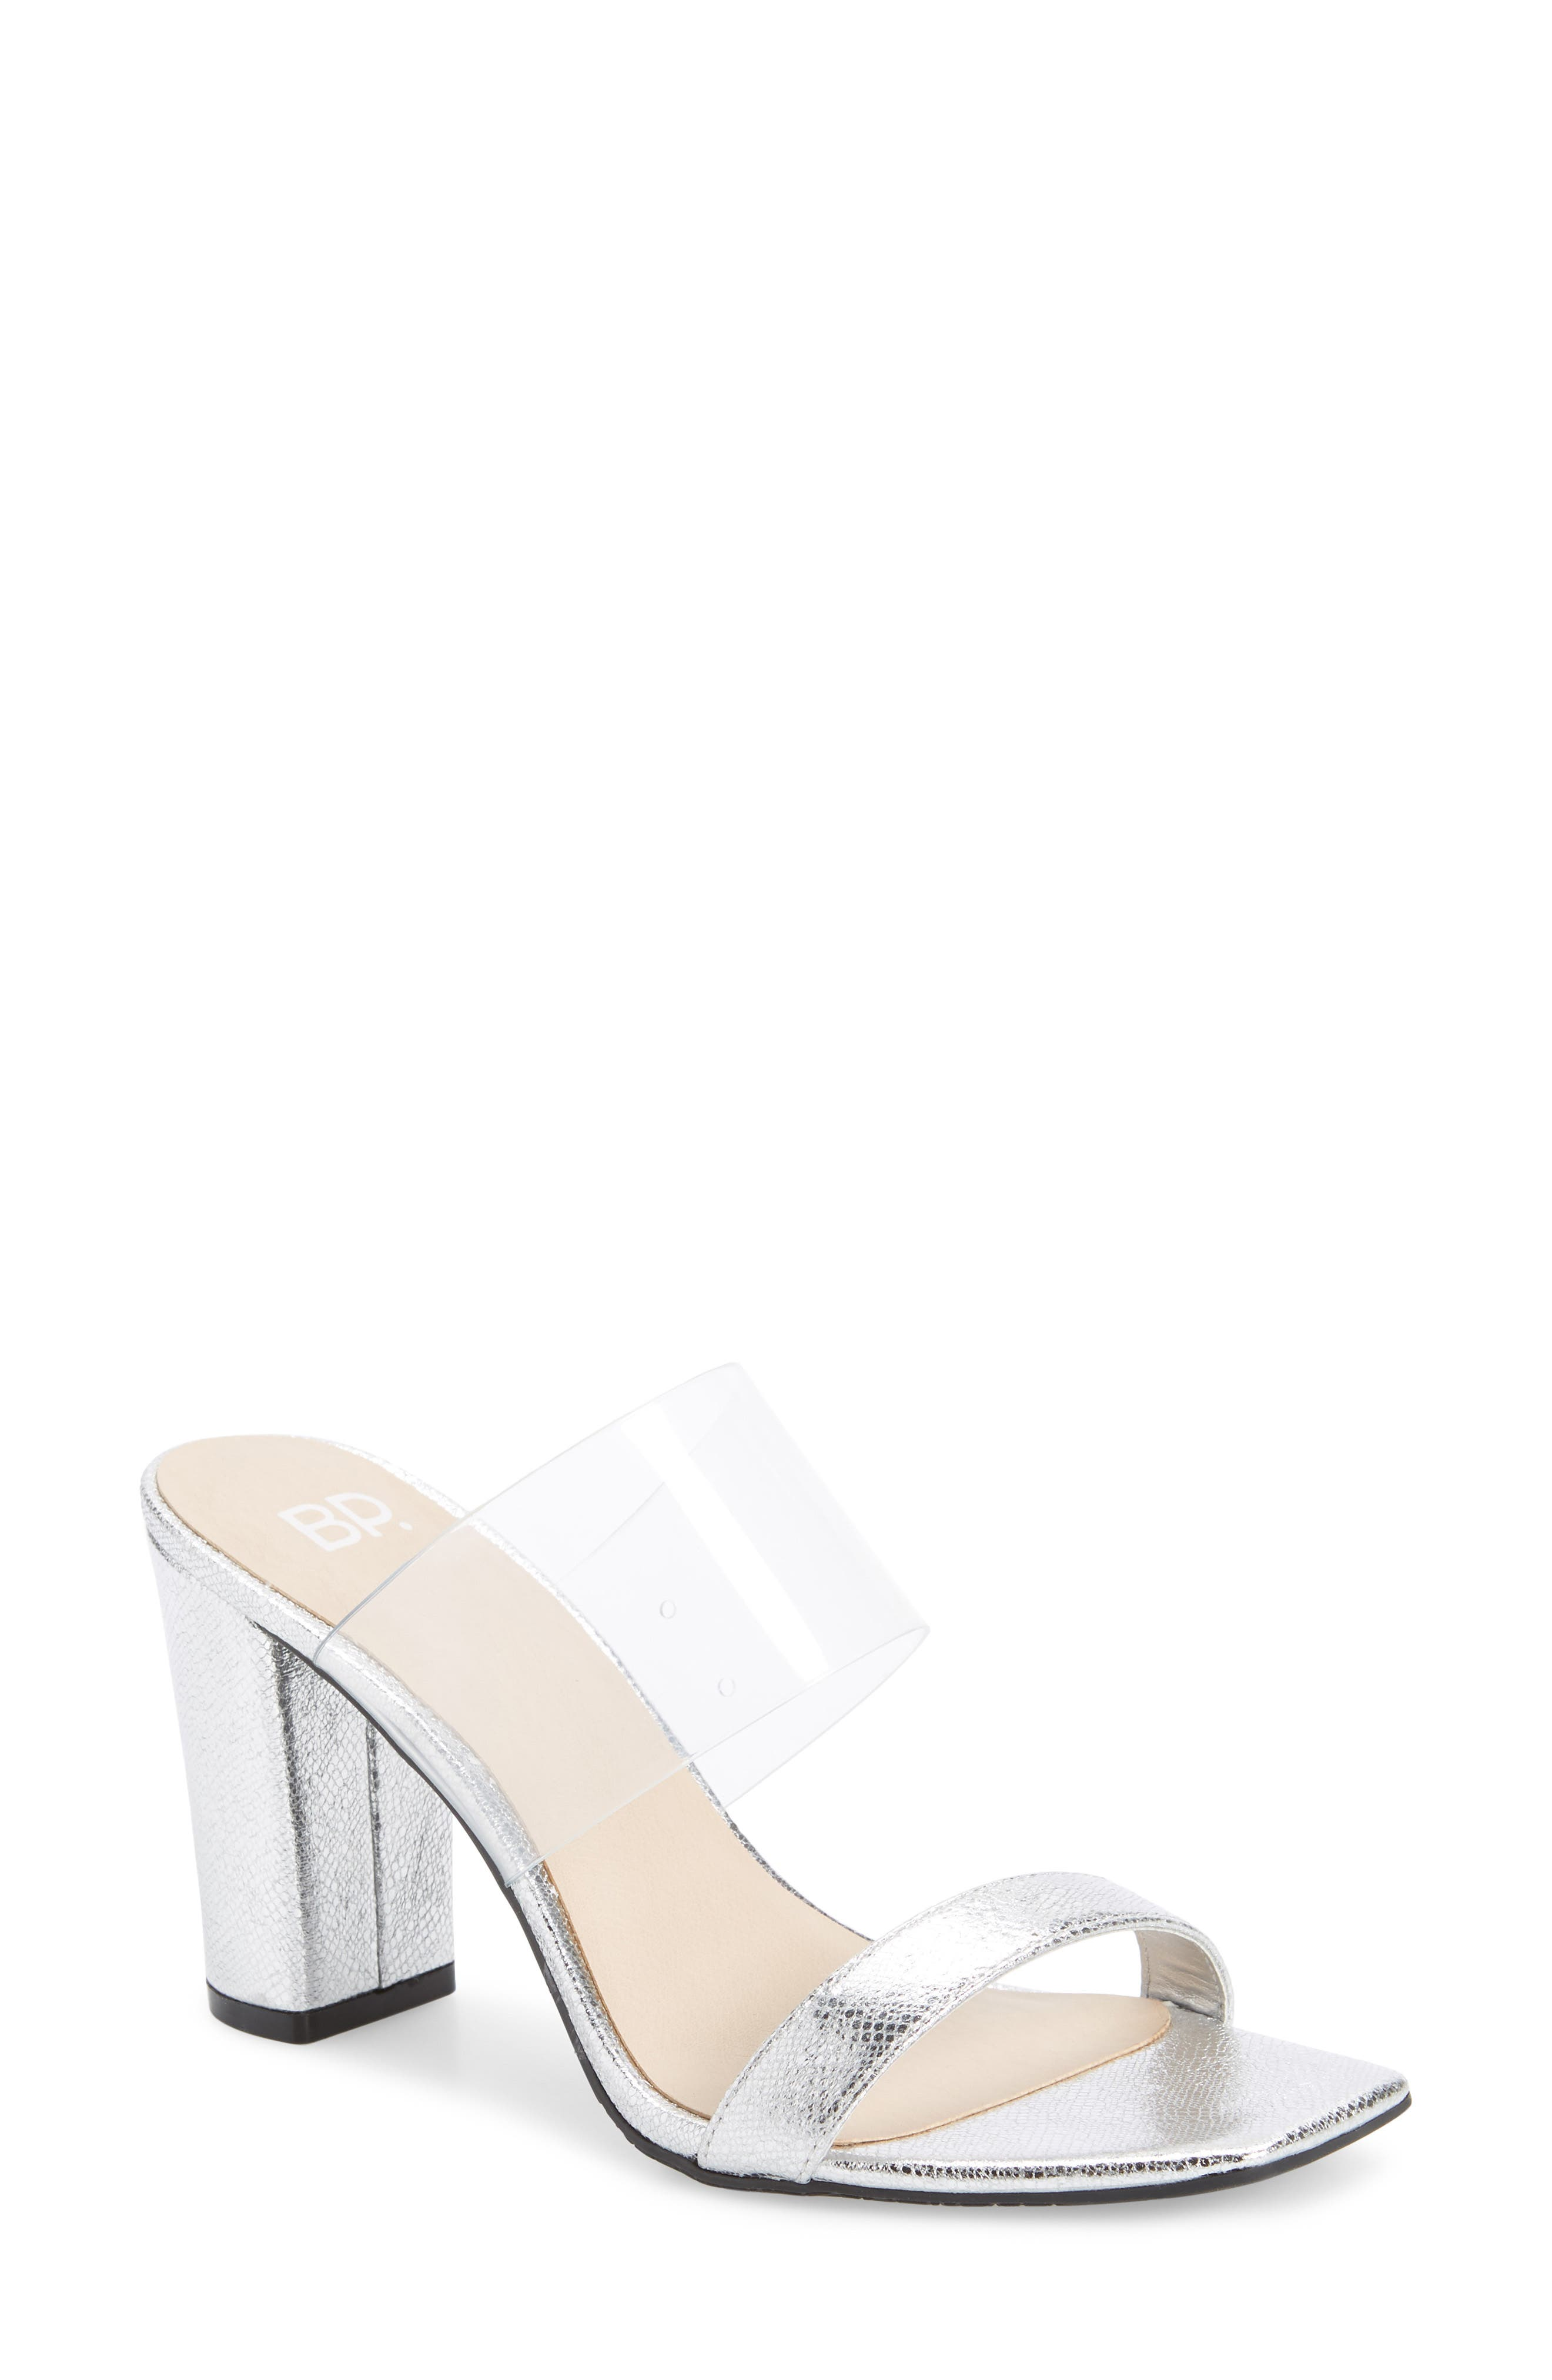 A transparent heel heightens the modern intrigue of this sleek, minimalist sandal. Style Name: Bp. Naomi Sandal (Women). Style Number: 5874144 3. Available in stores.